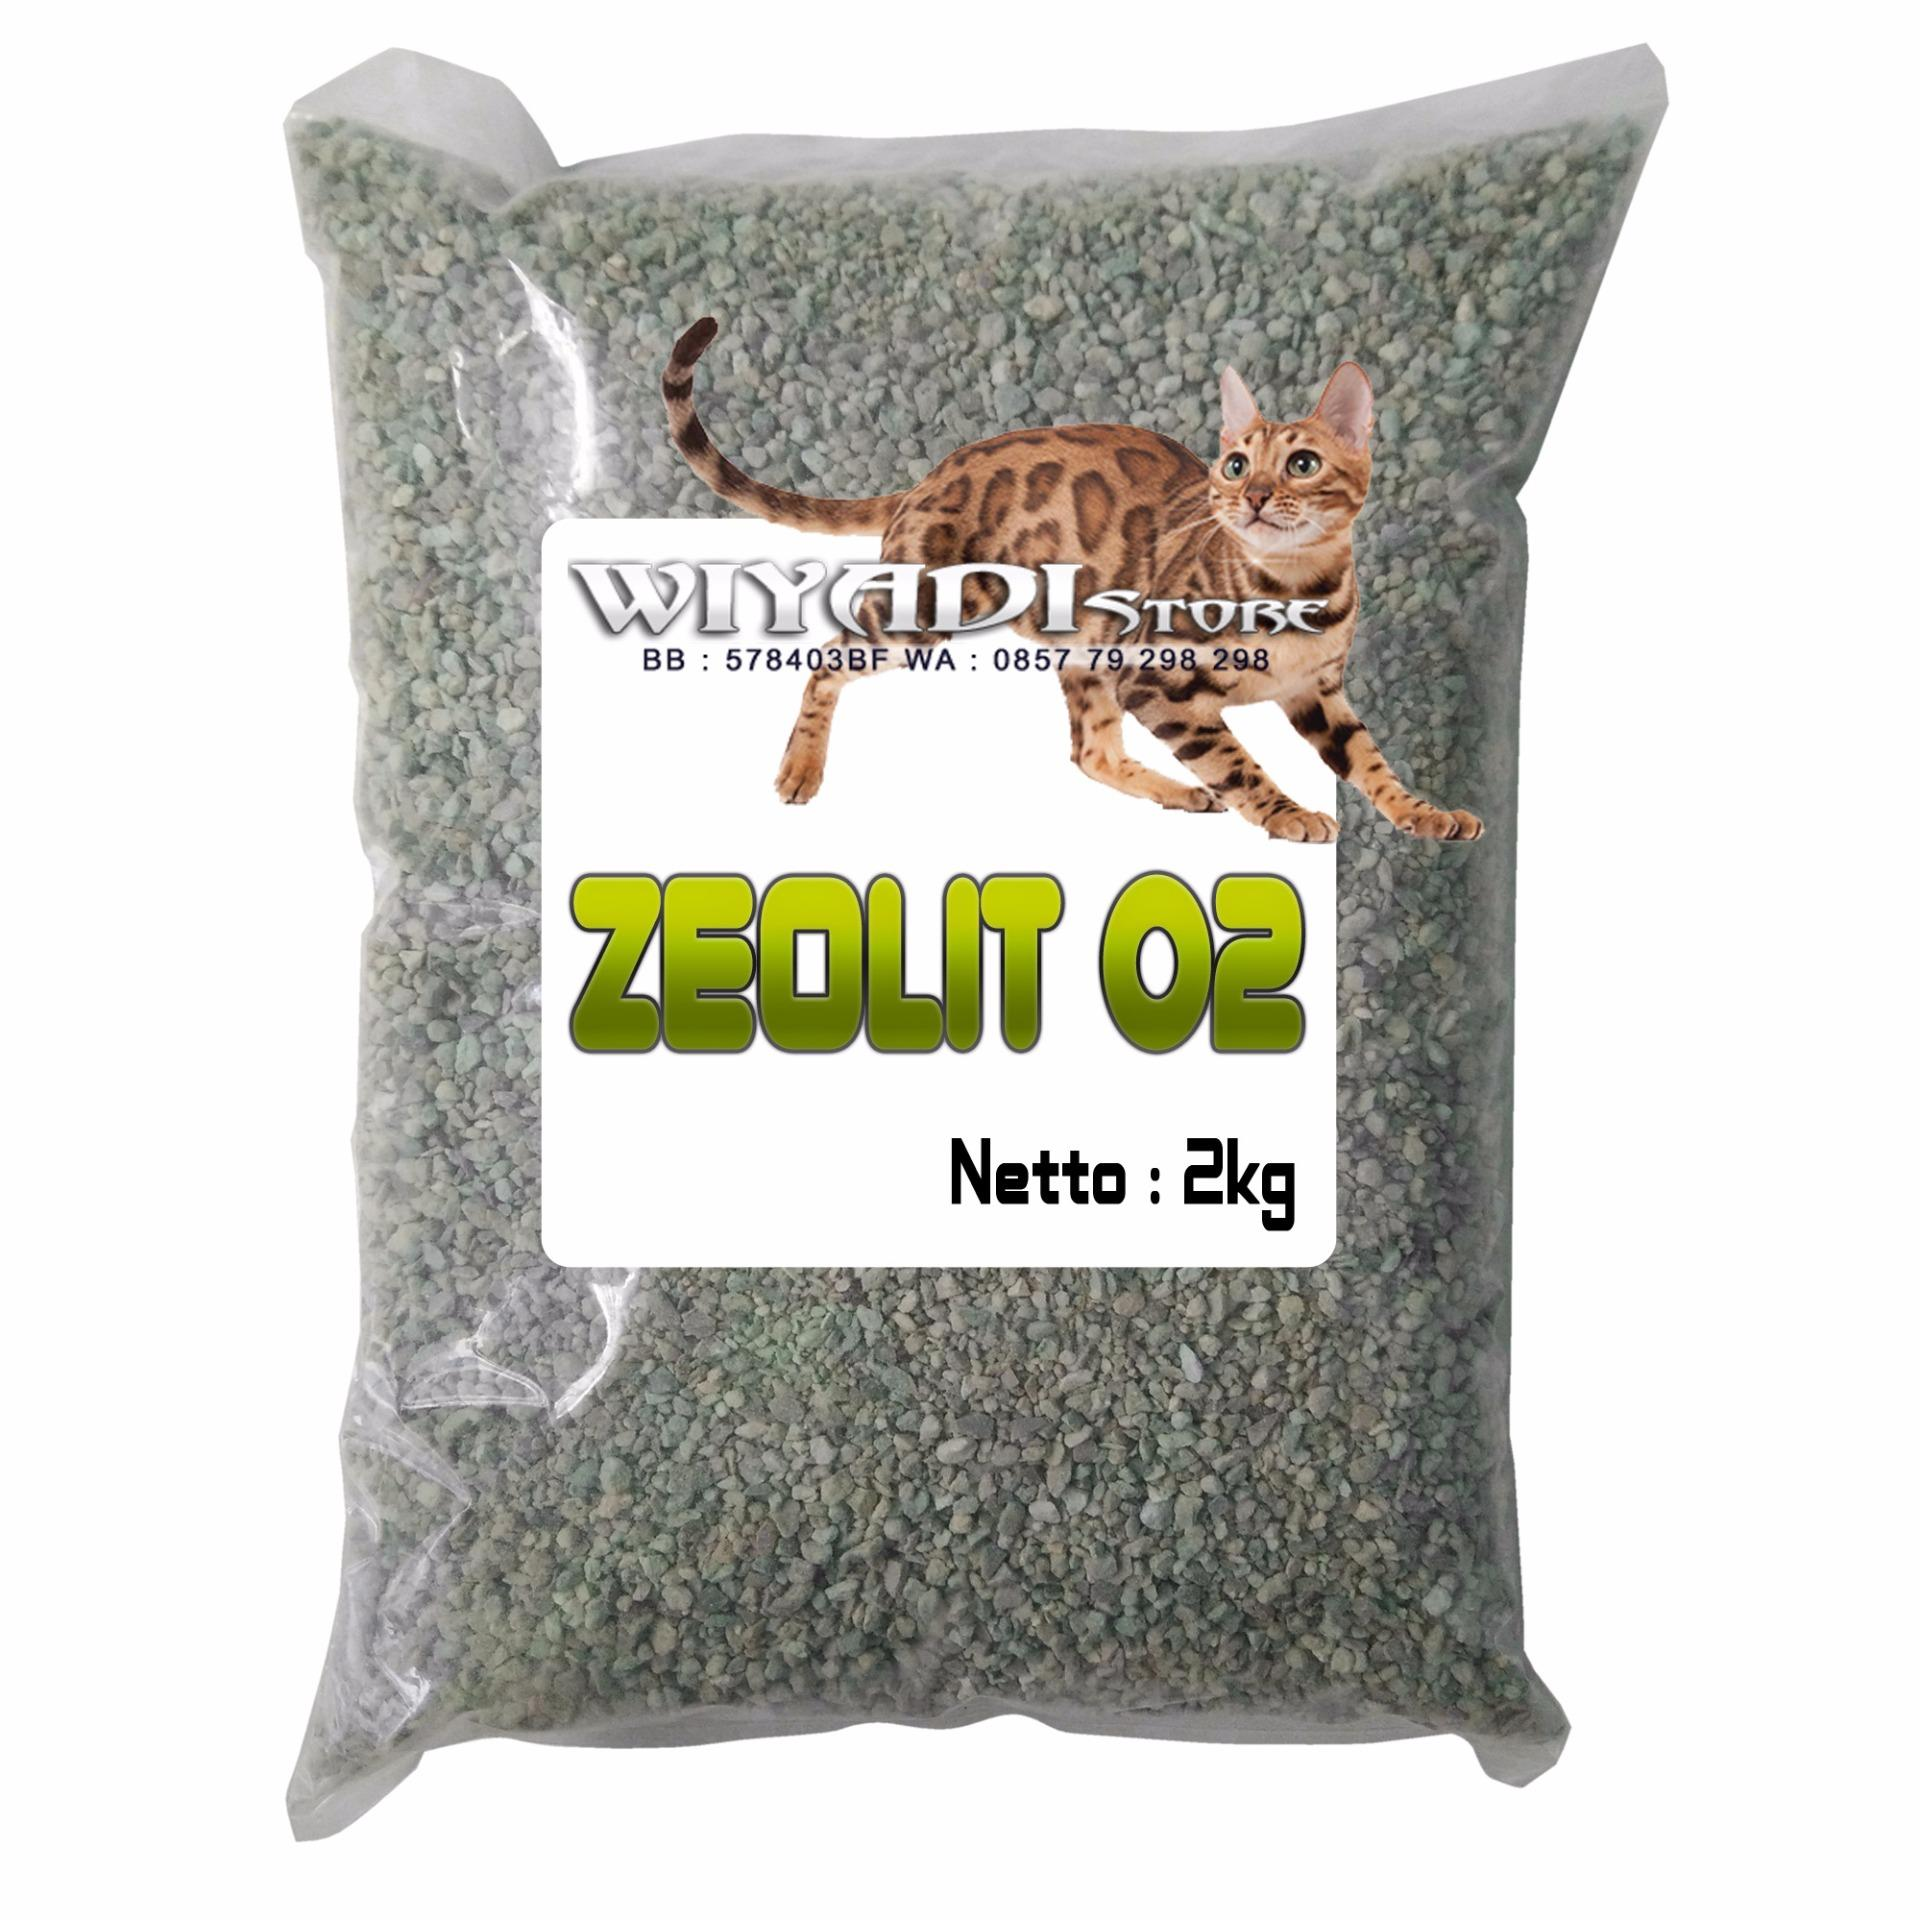 Wiyadistore - Pasir Kucing Zeolit 02 [re-Pack 2kg] By Wiyadistore.